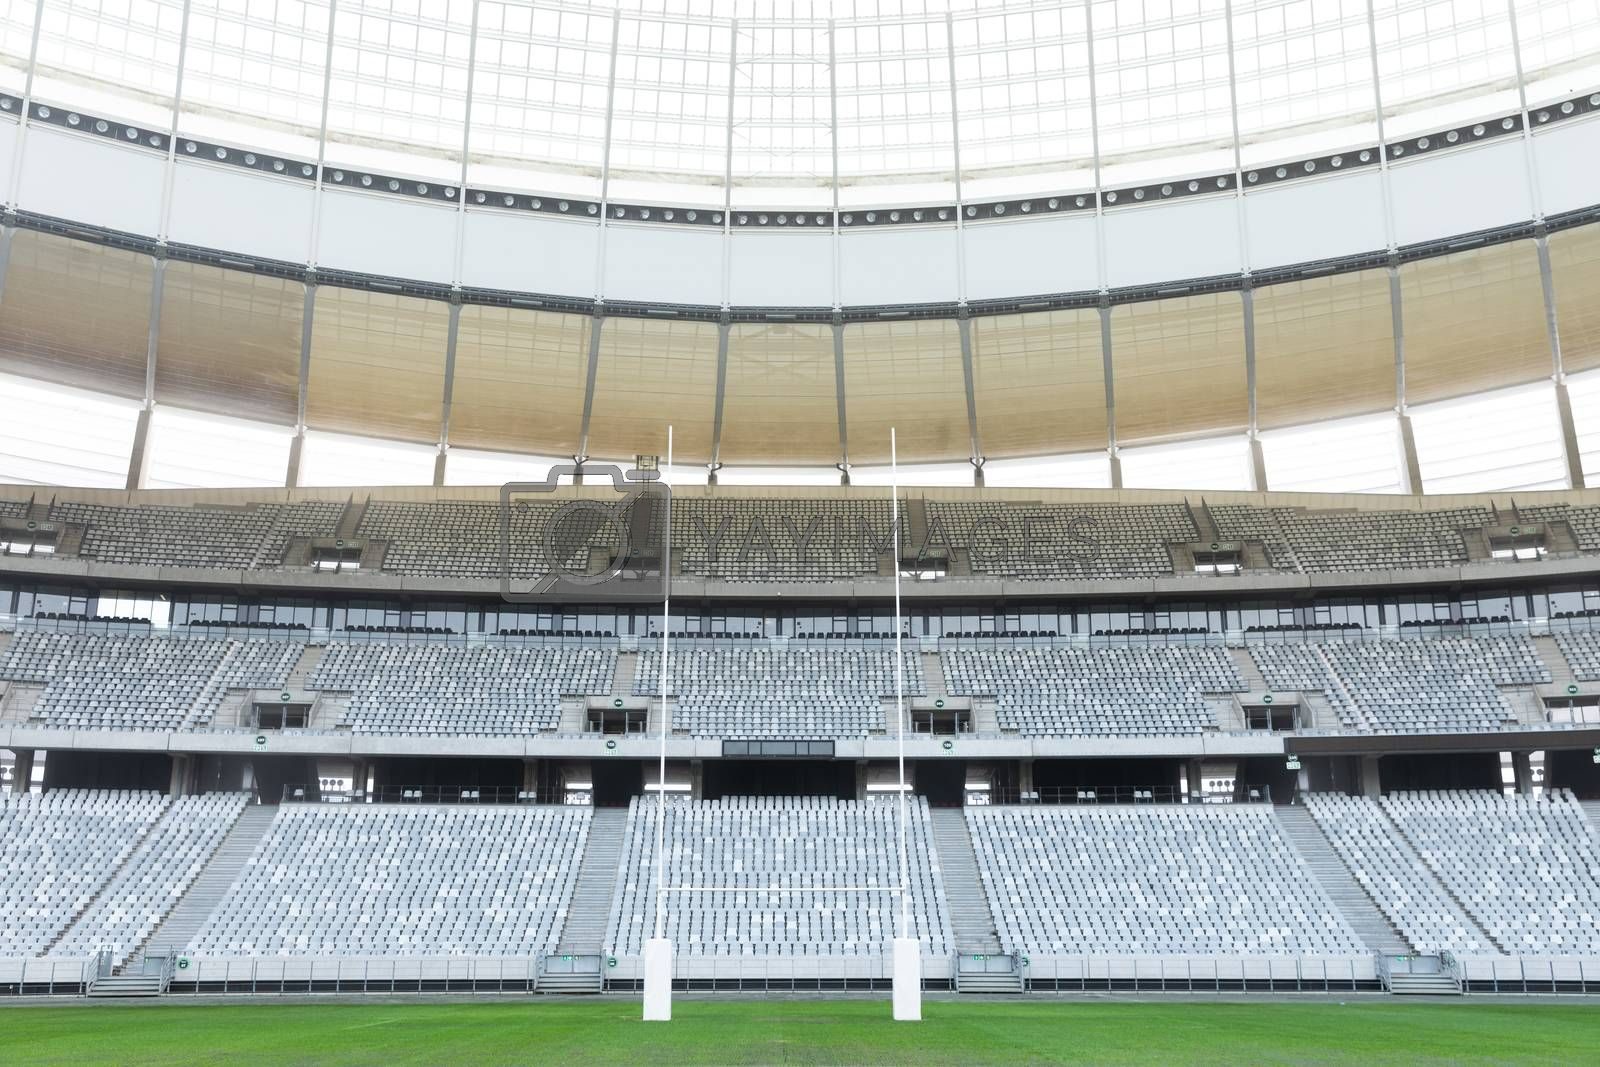 Front view of rugby goal post in a empty stadium